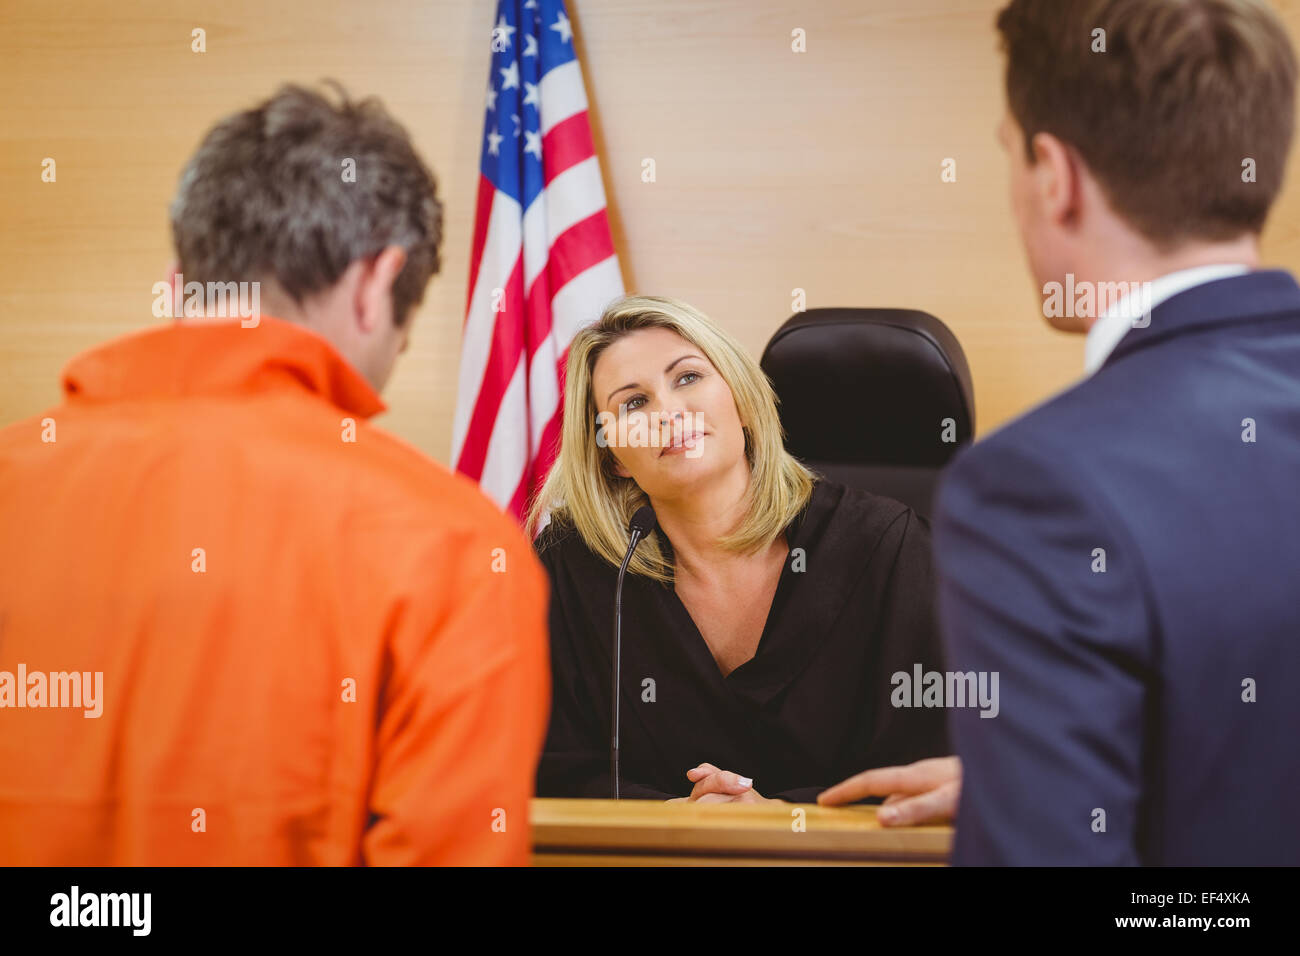 Lawyer speaking about the criminal in orange jumpsuit - Stock Image